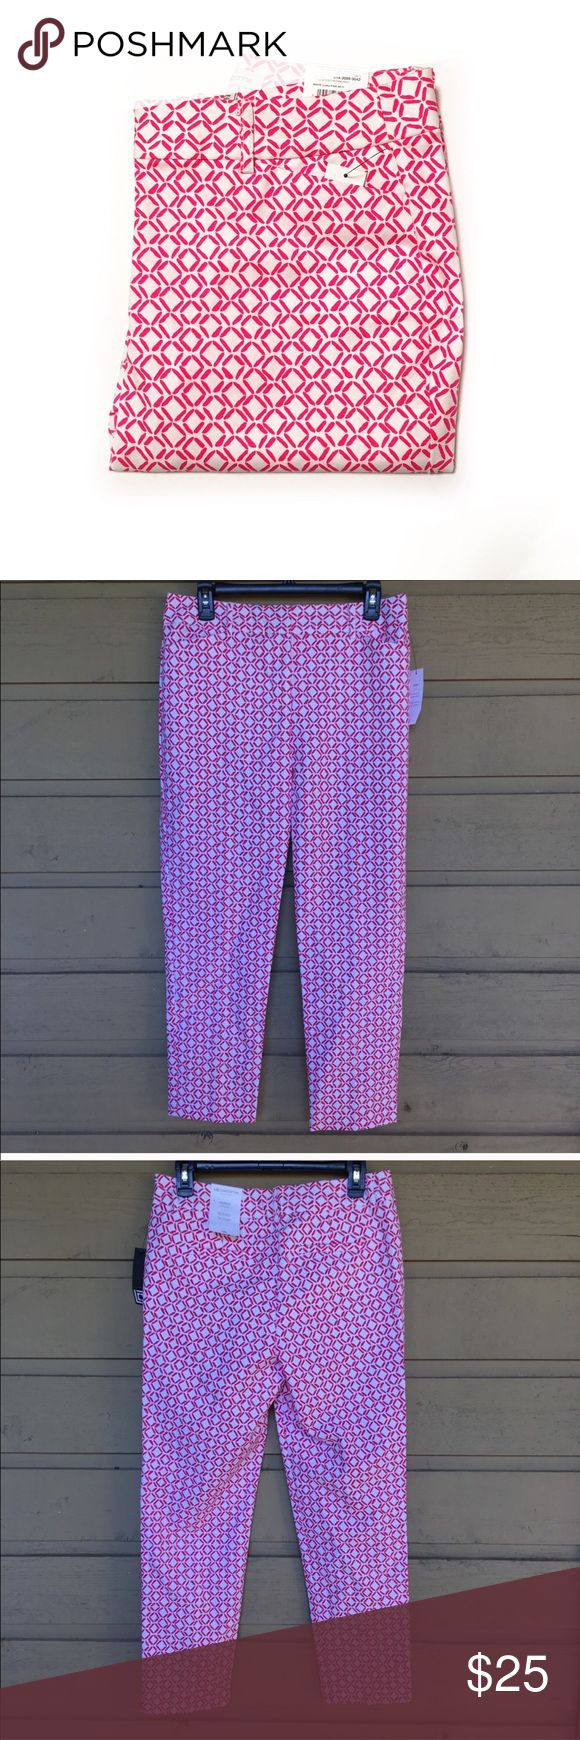 "Liz Claiborne Emma Ankle Capri Pants * Liz Claiborne brand * Emma ankle pants * Size 6 * Brand new with tags * 98% cotton, 2 Spandex * Pink and white pattern  * Skim through hip and thigh * Sits slightly below the waist  * 27"" inseam * Front and back pockets * Belt loops Liz Claiborne Pants Capris"